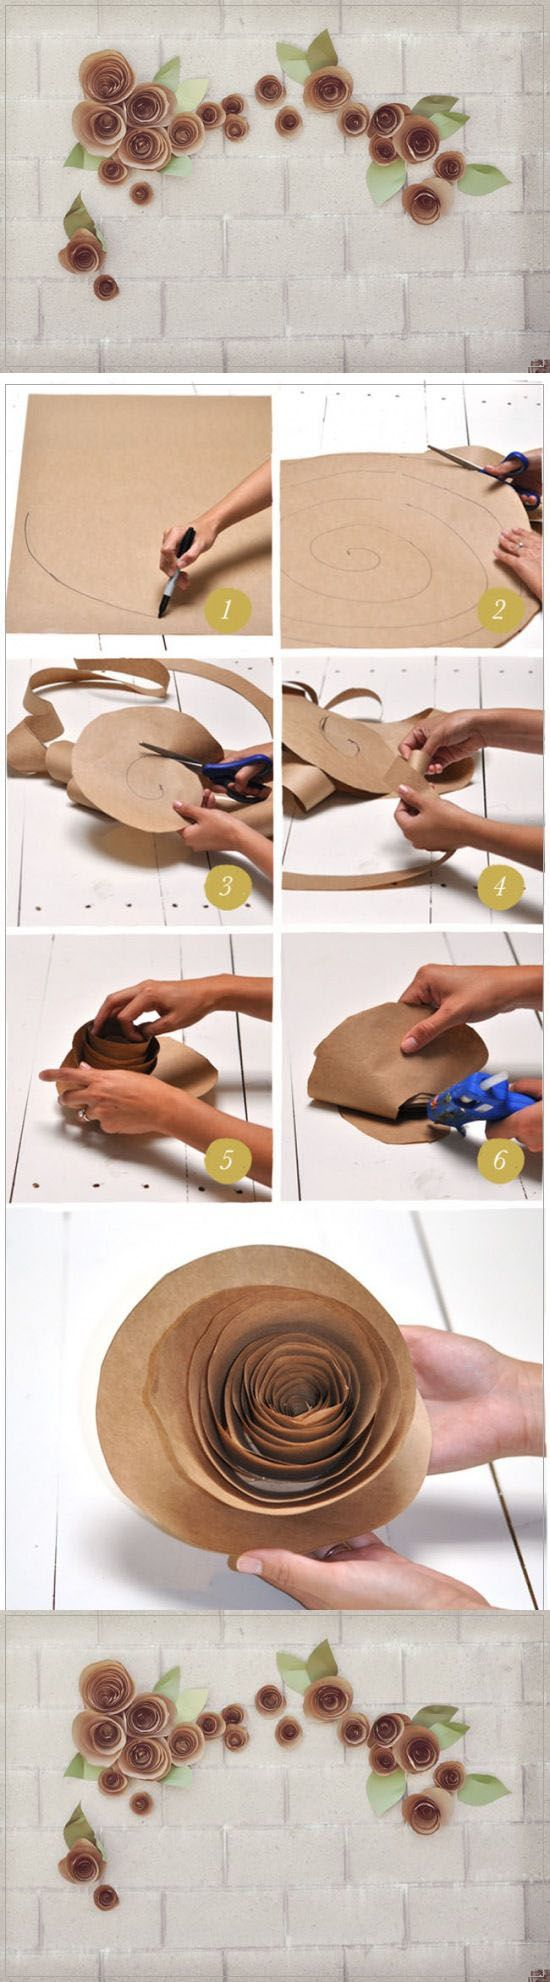 Best crafts ideas on pinterest creativity build your own and